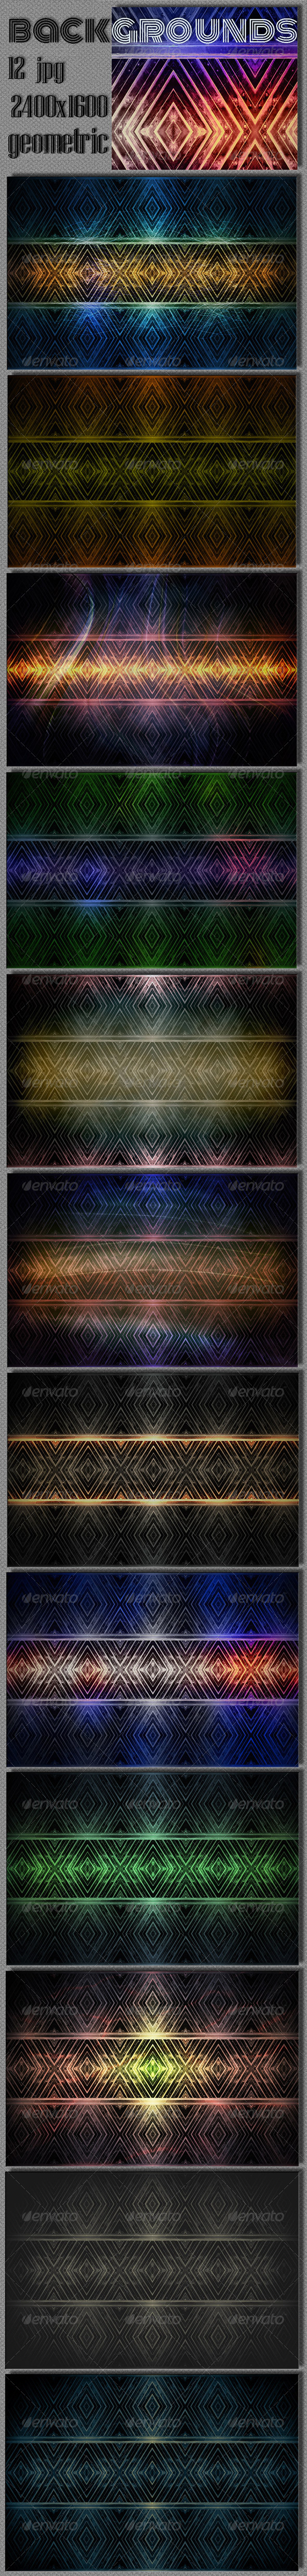 Geometric Rhombus Background